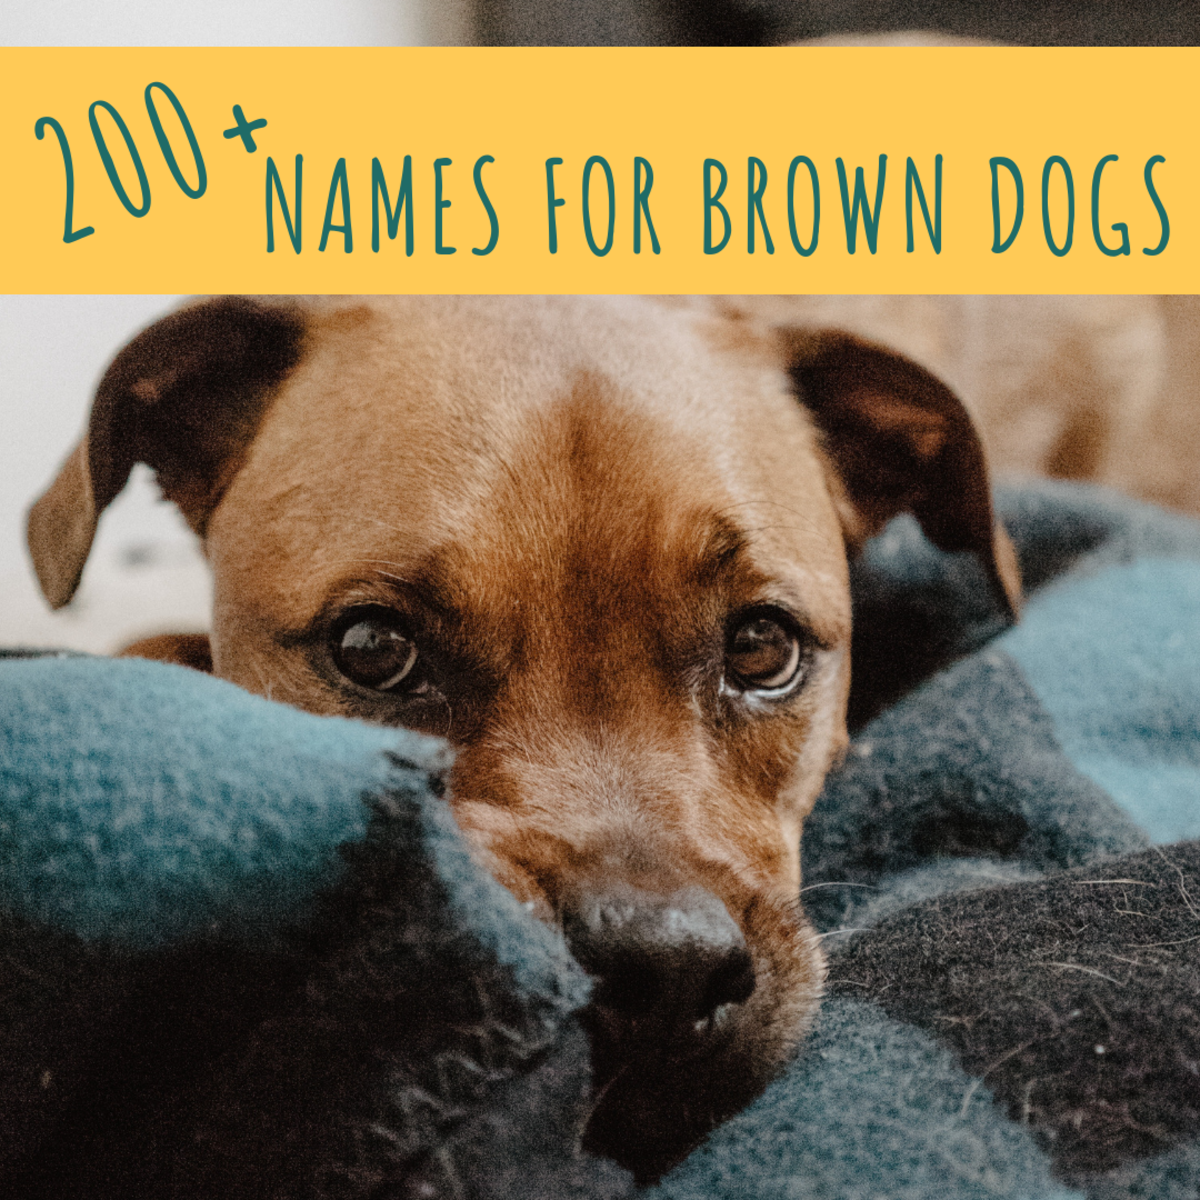 200+ Best Chocolate and Brown Dog Name Ideas